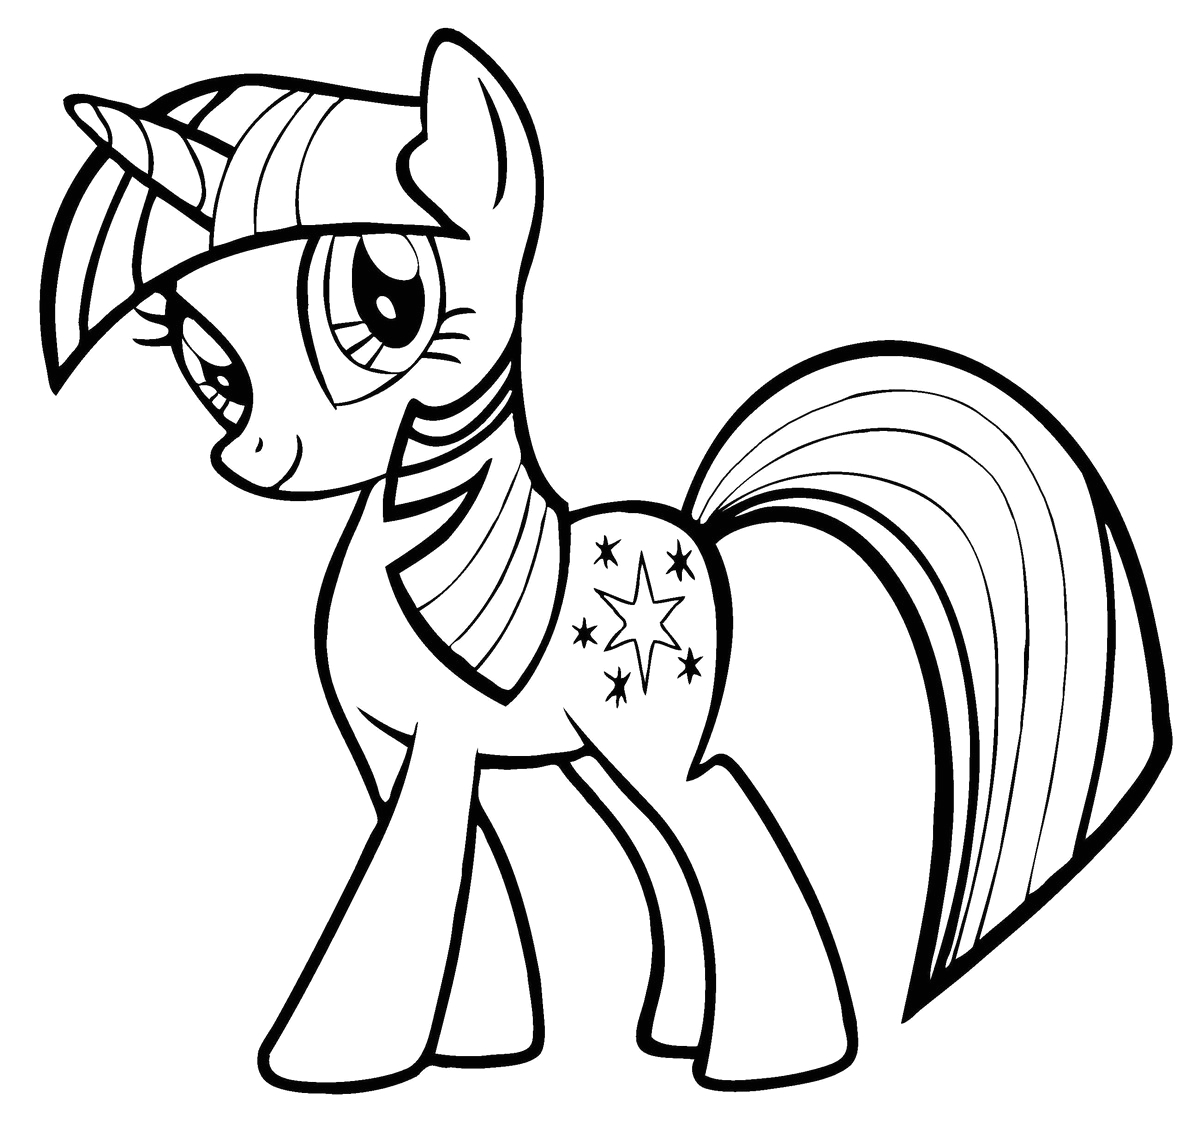 My Little Pony Coloring Pages to Color Online My Little Pony Coloring Pages